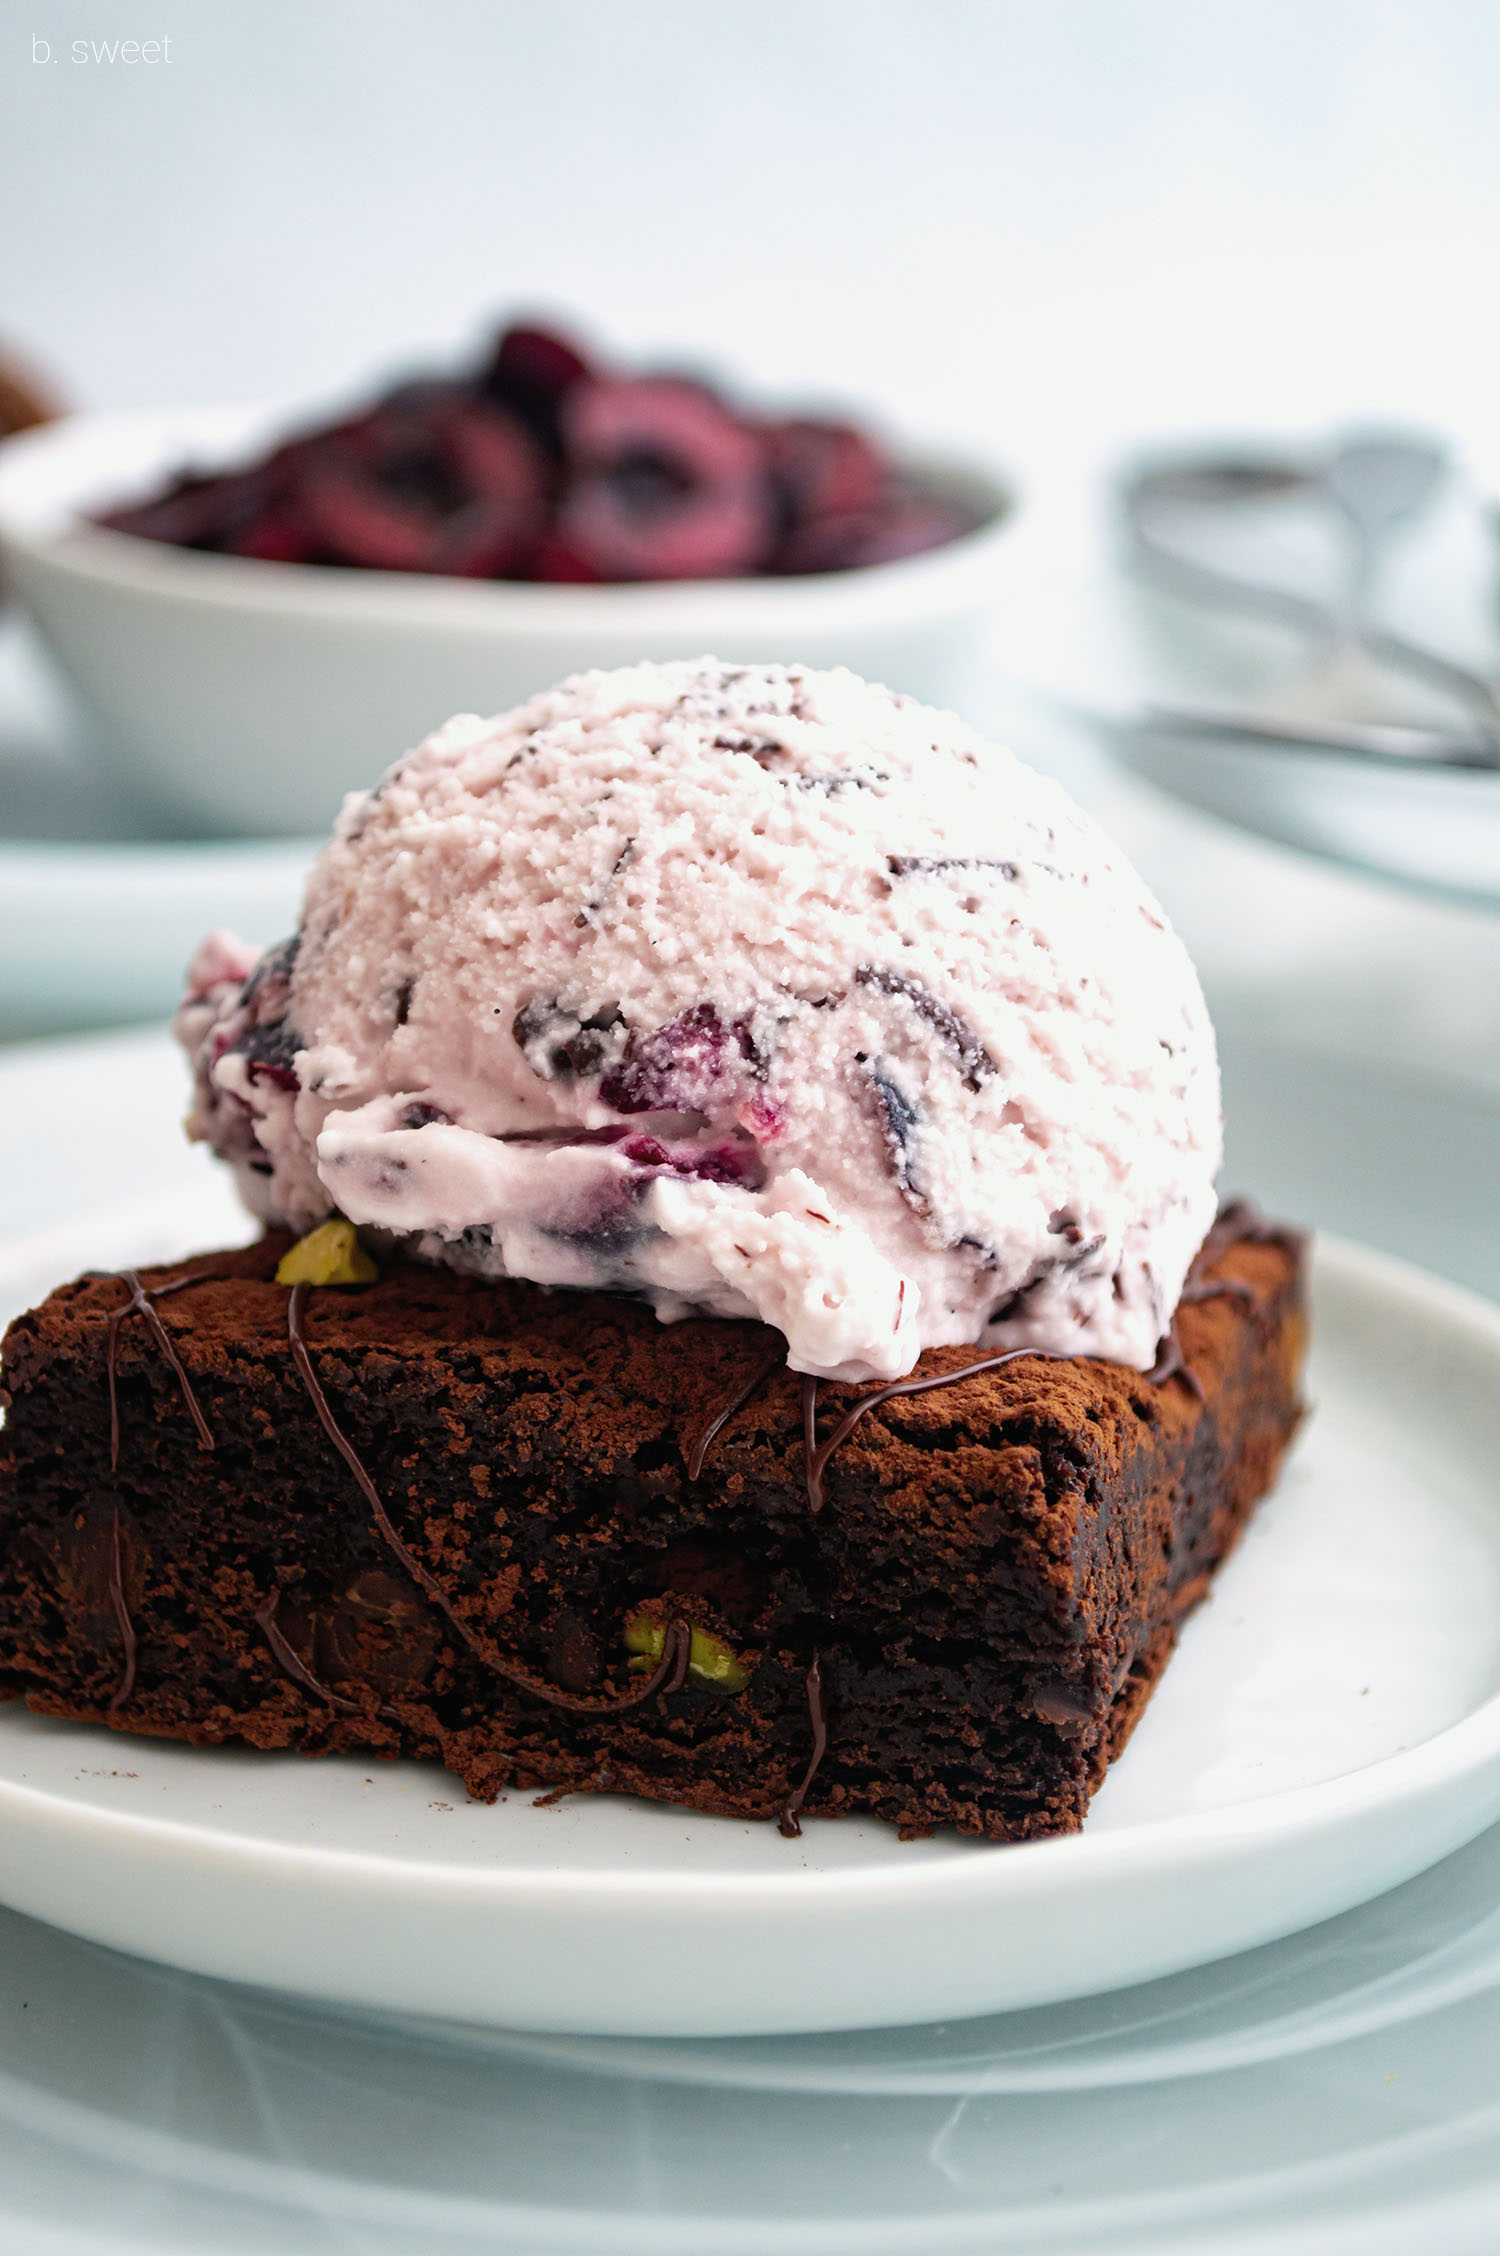 Drunken Cherry Dark Chocolate Stracciatella Pistachio Brownie Sundae - b. sweet